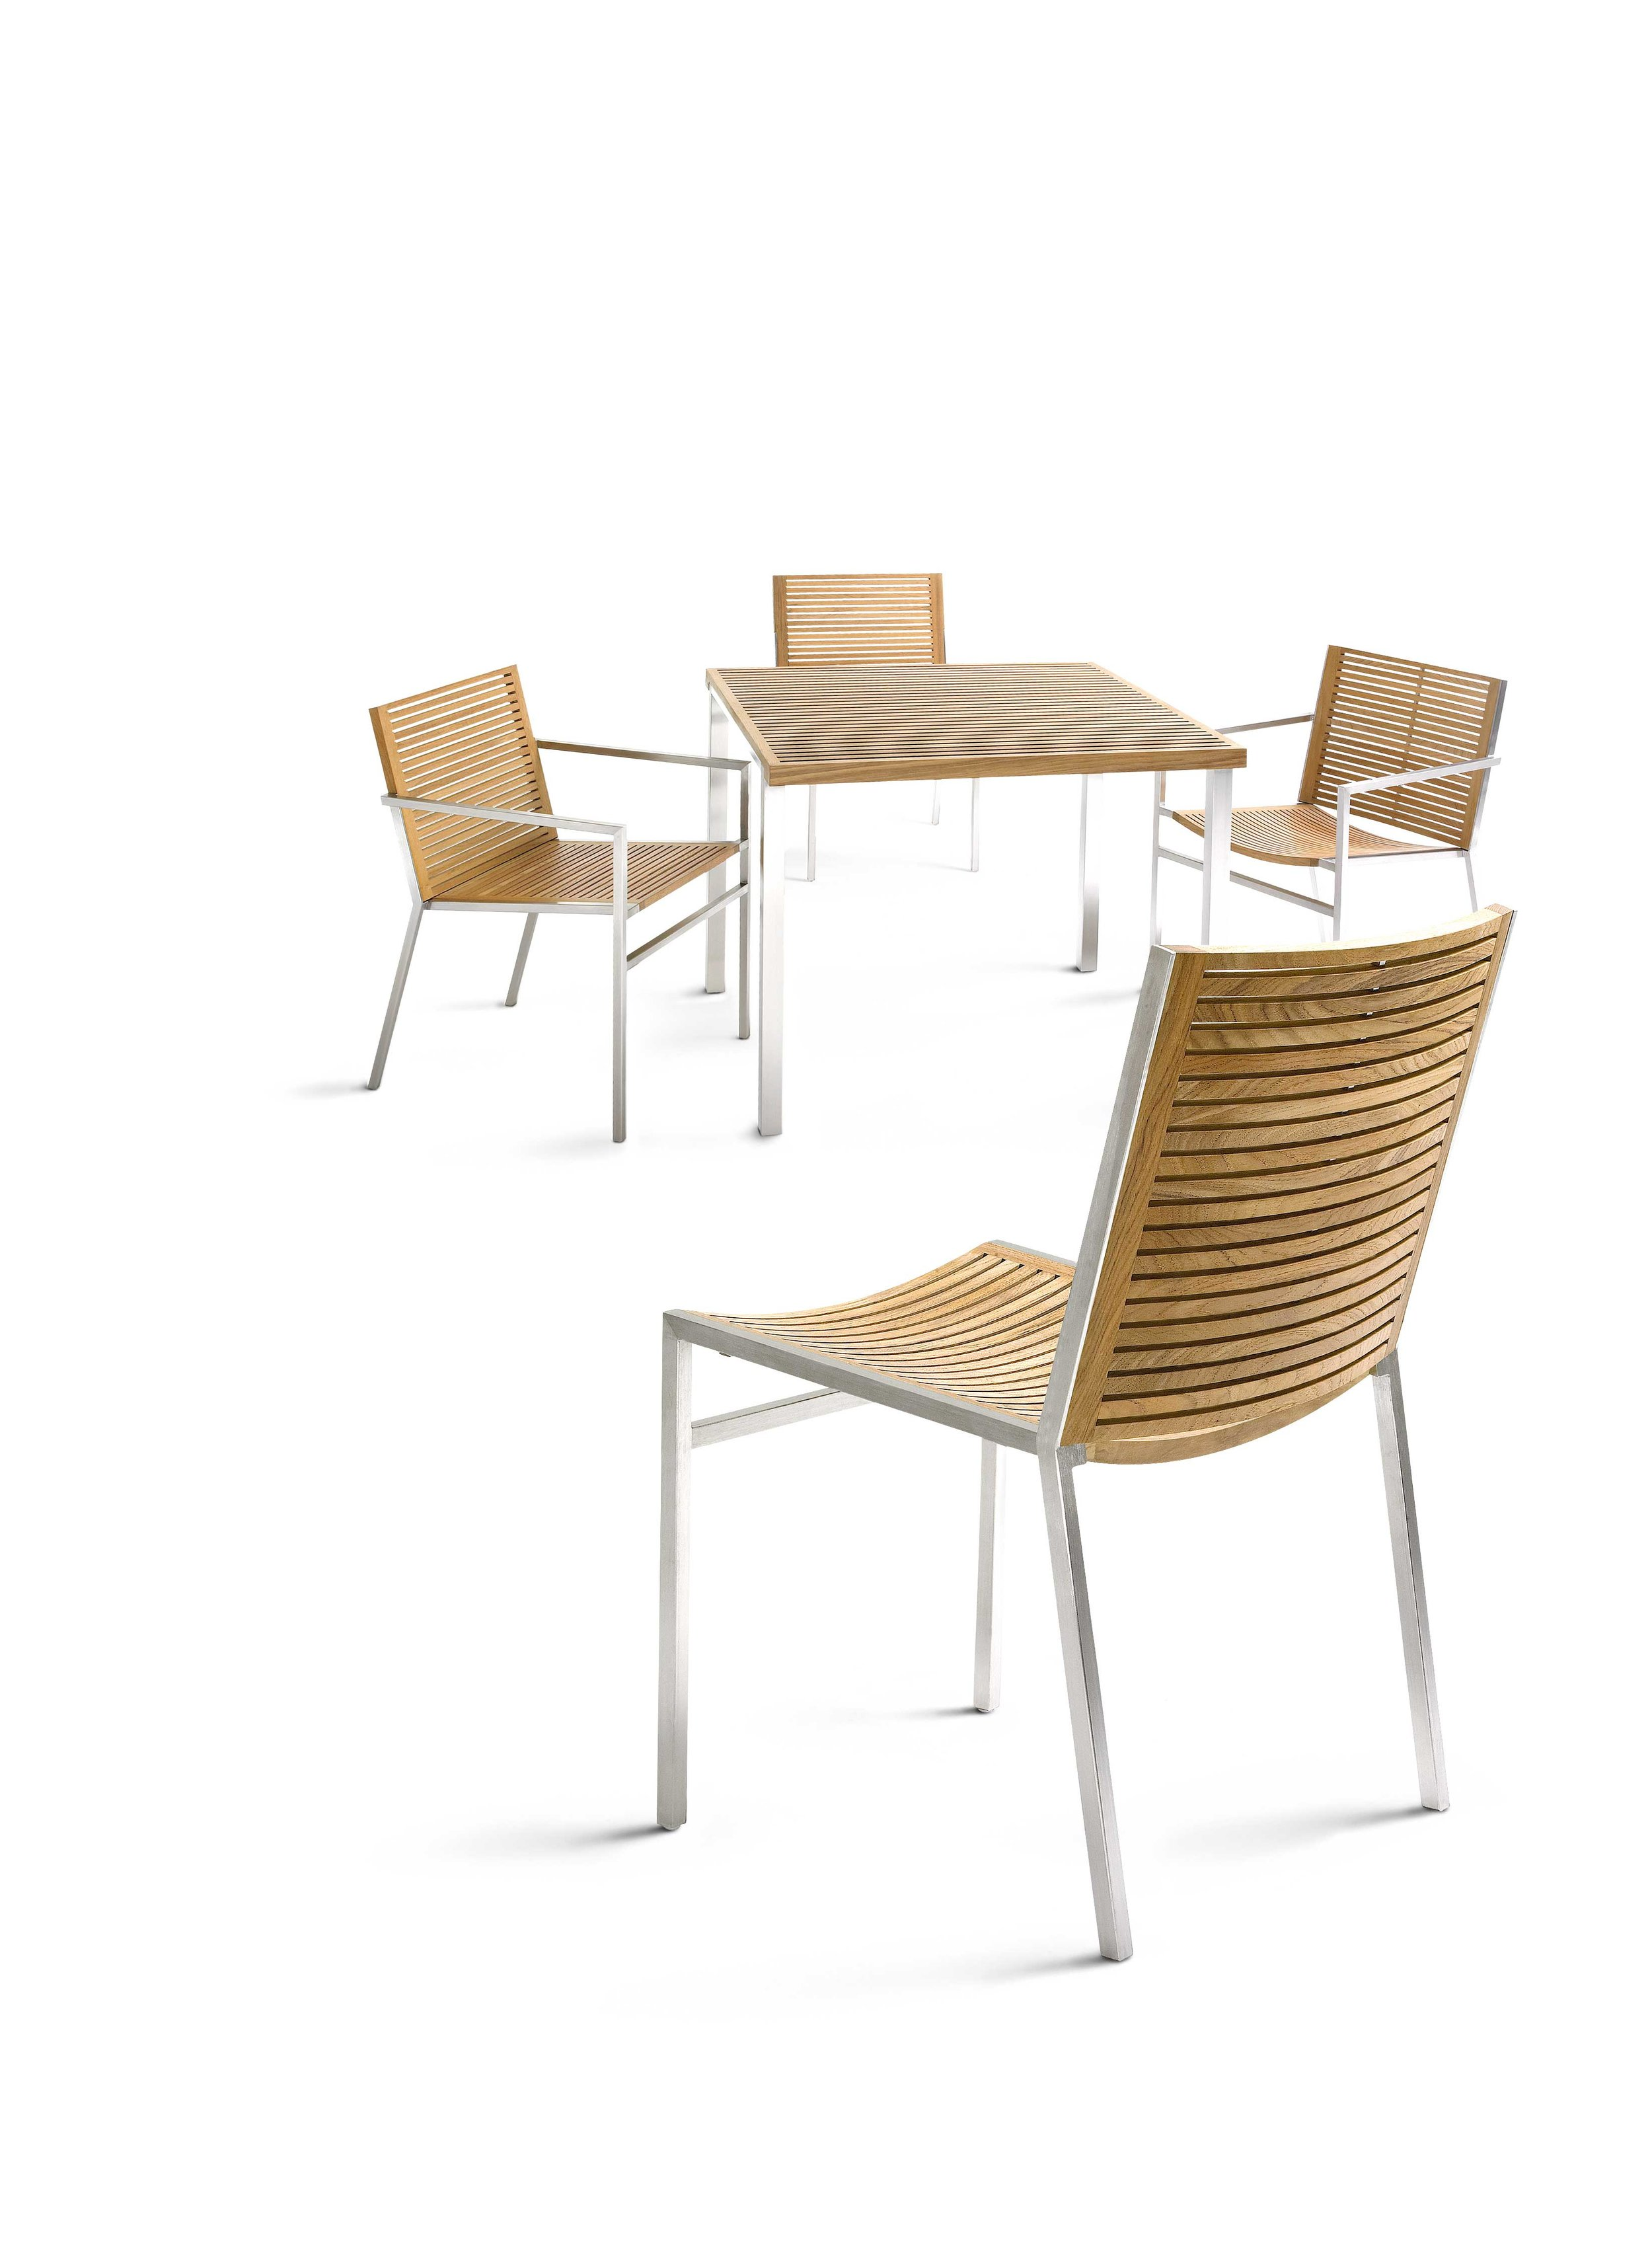 BEO-9103-side-chair-foreground.jpg